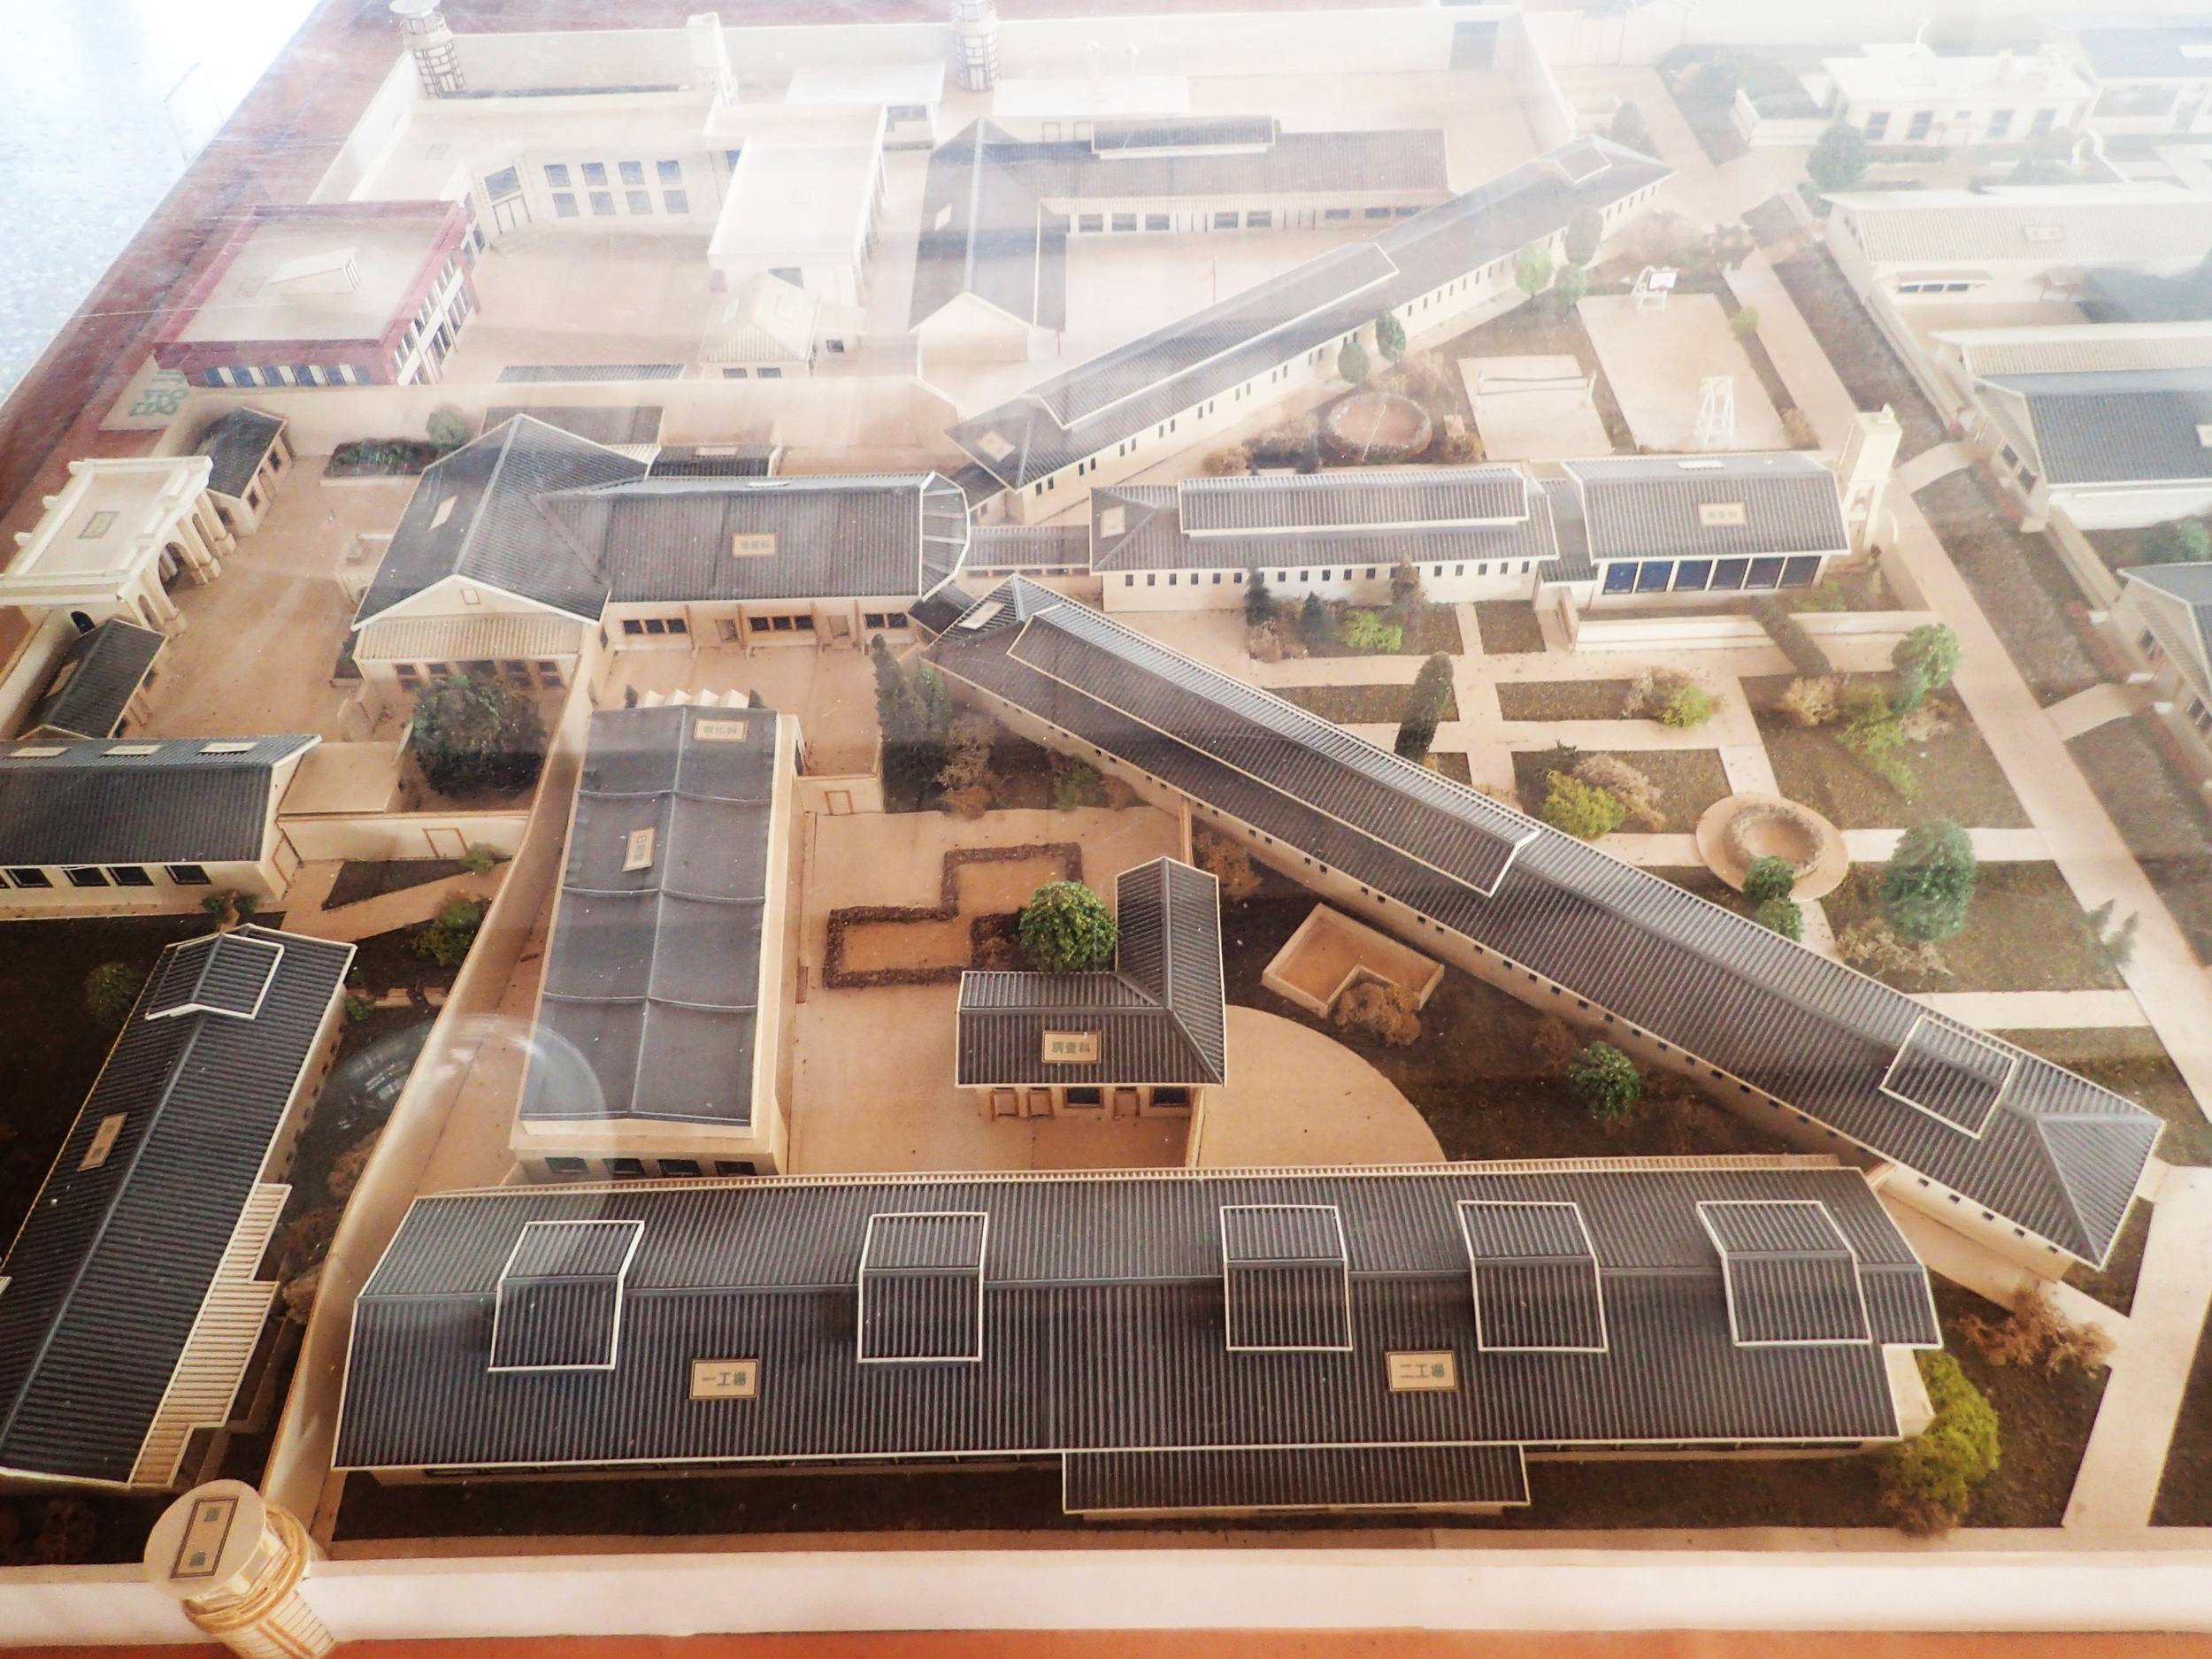 Basic panopticon design and a model of Chiayi prison